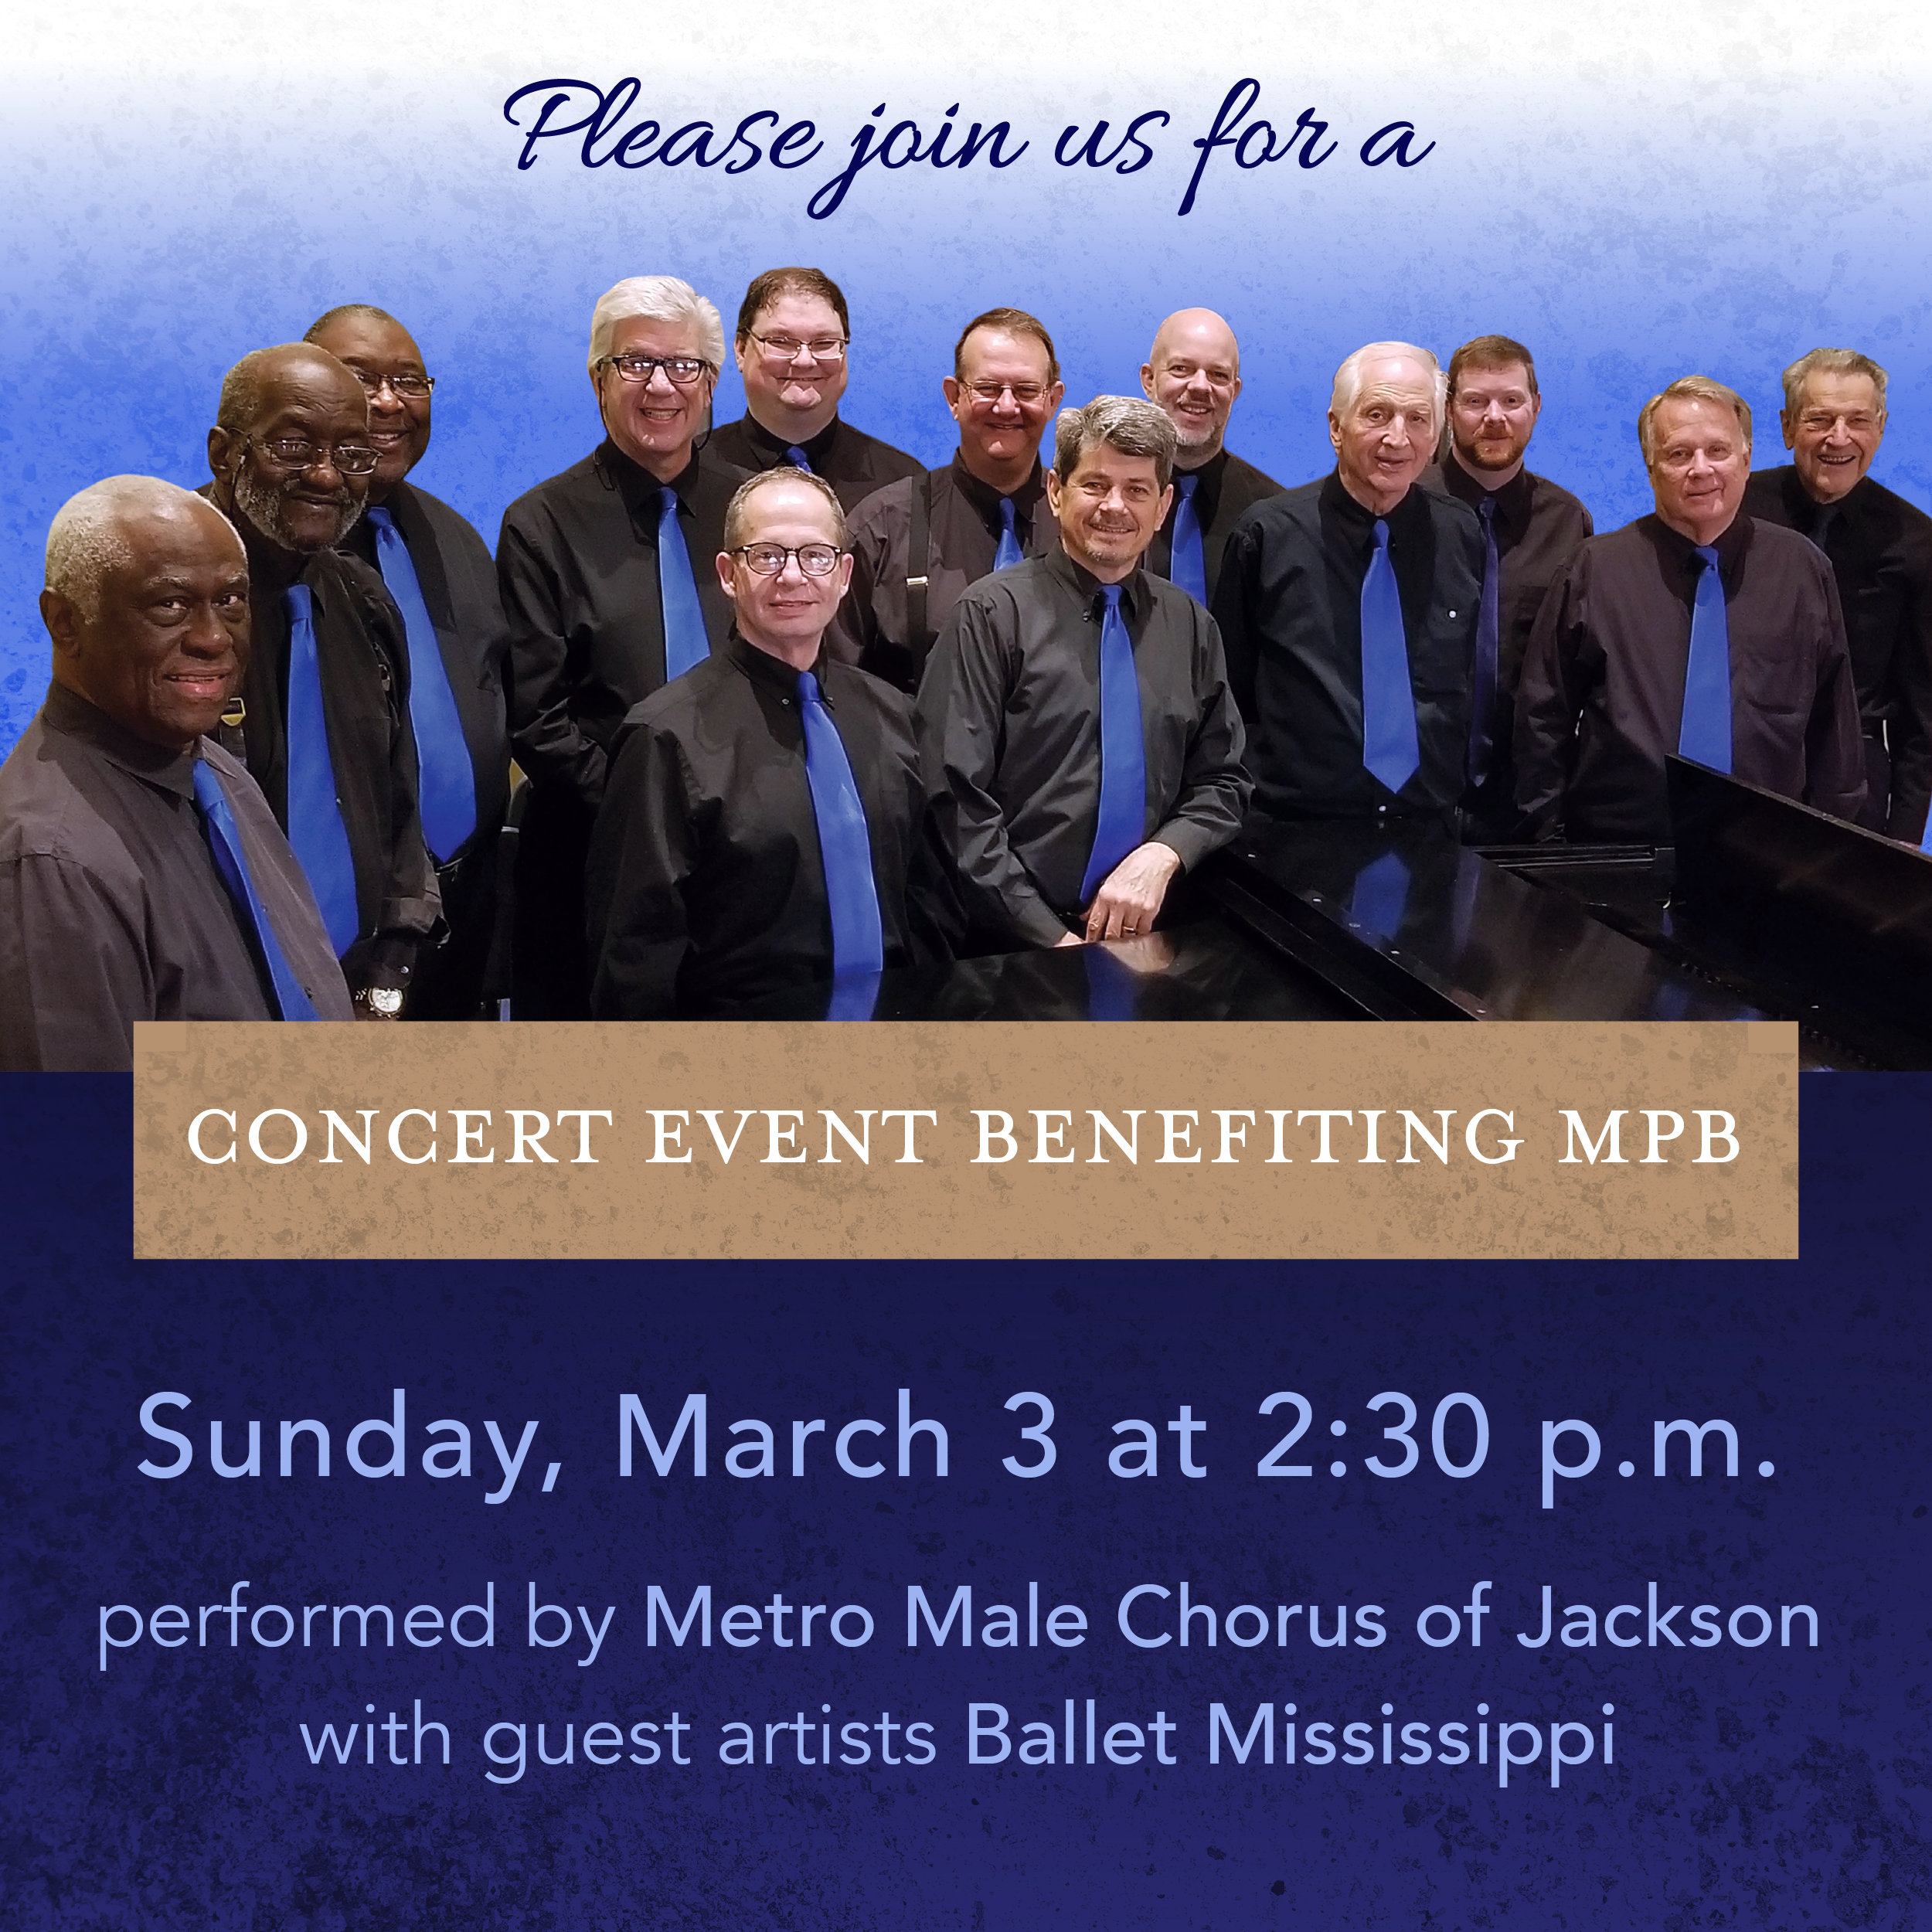 Metro Male Chorus of Jackson Benefit Concert